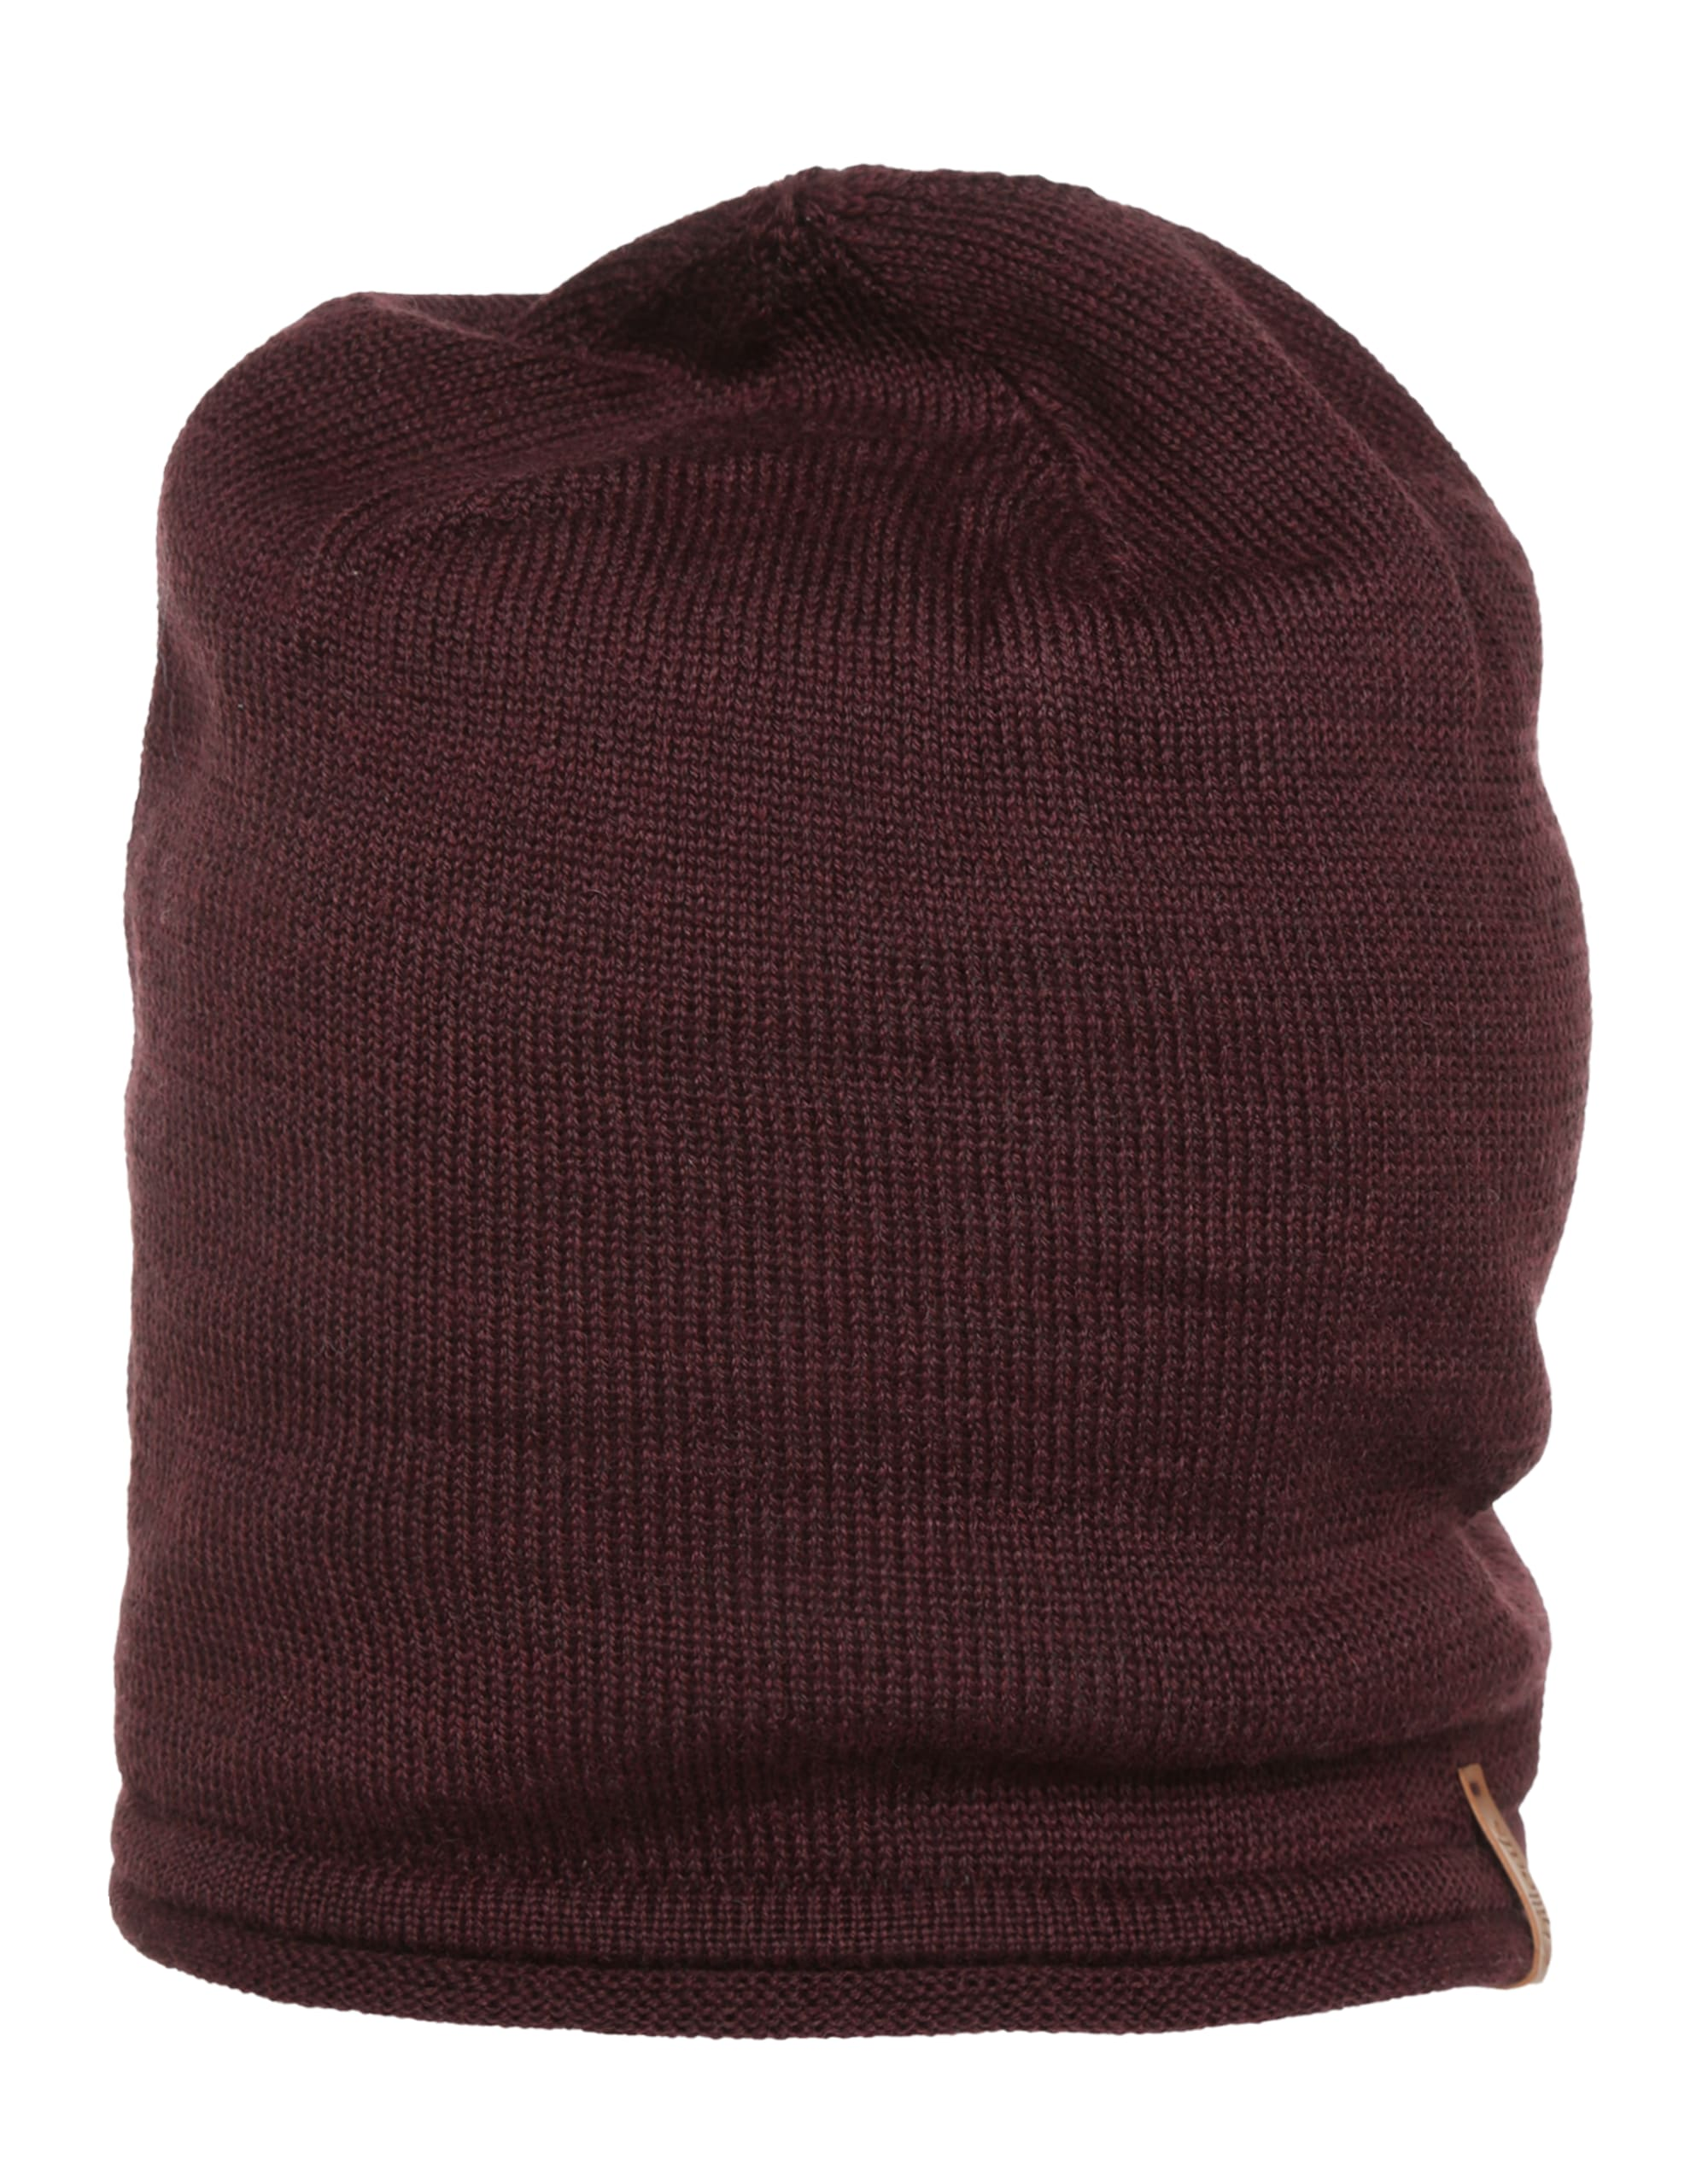 Muts 'Leicester Hat'